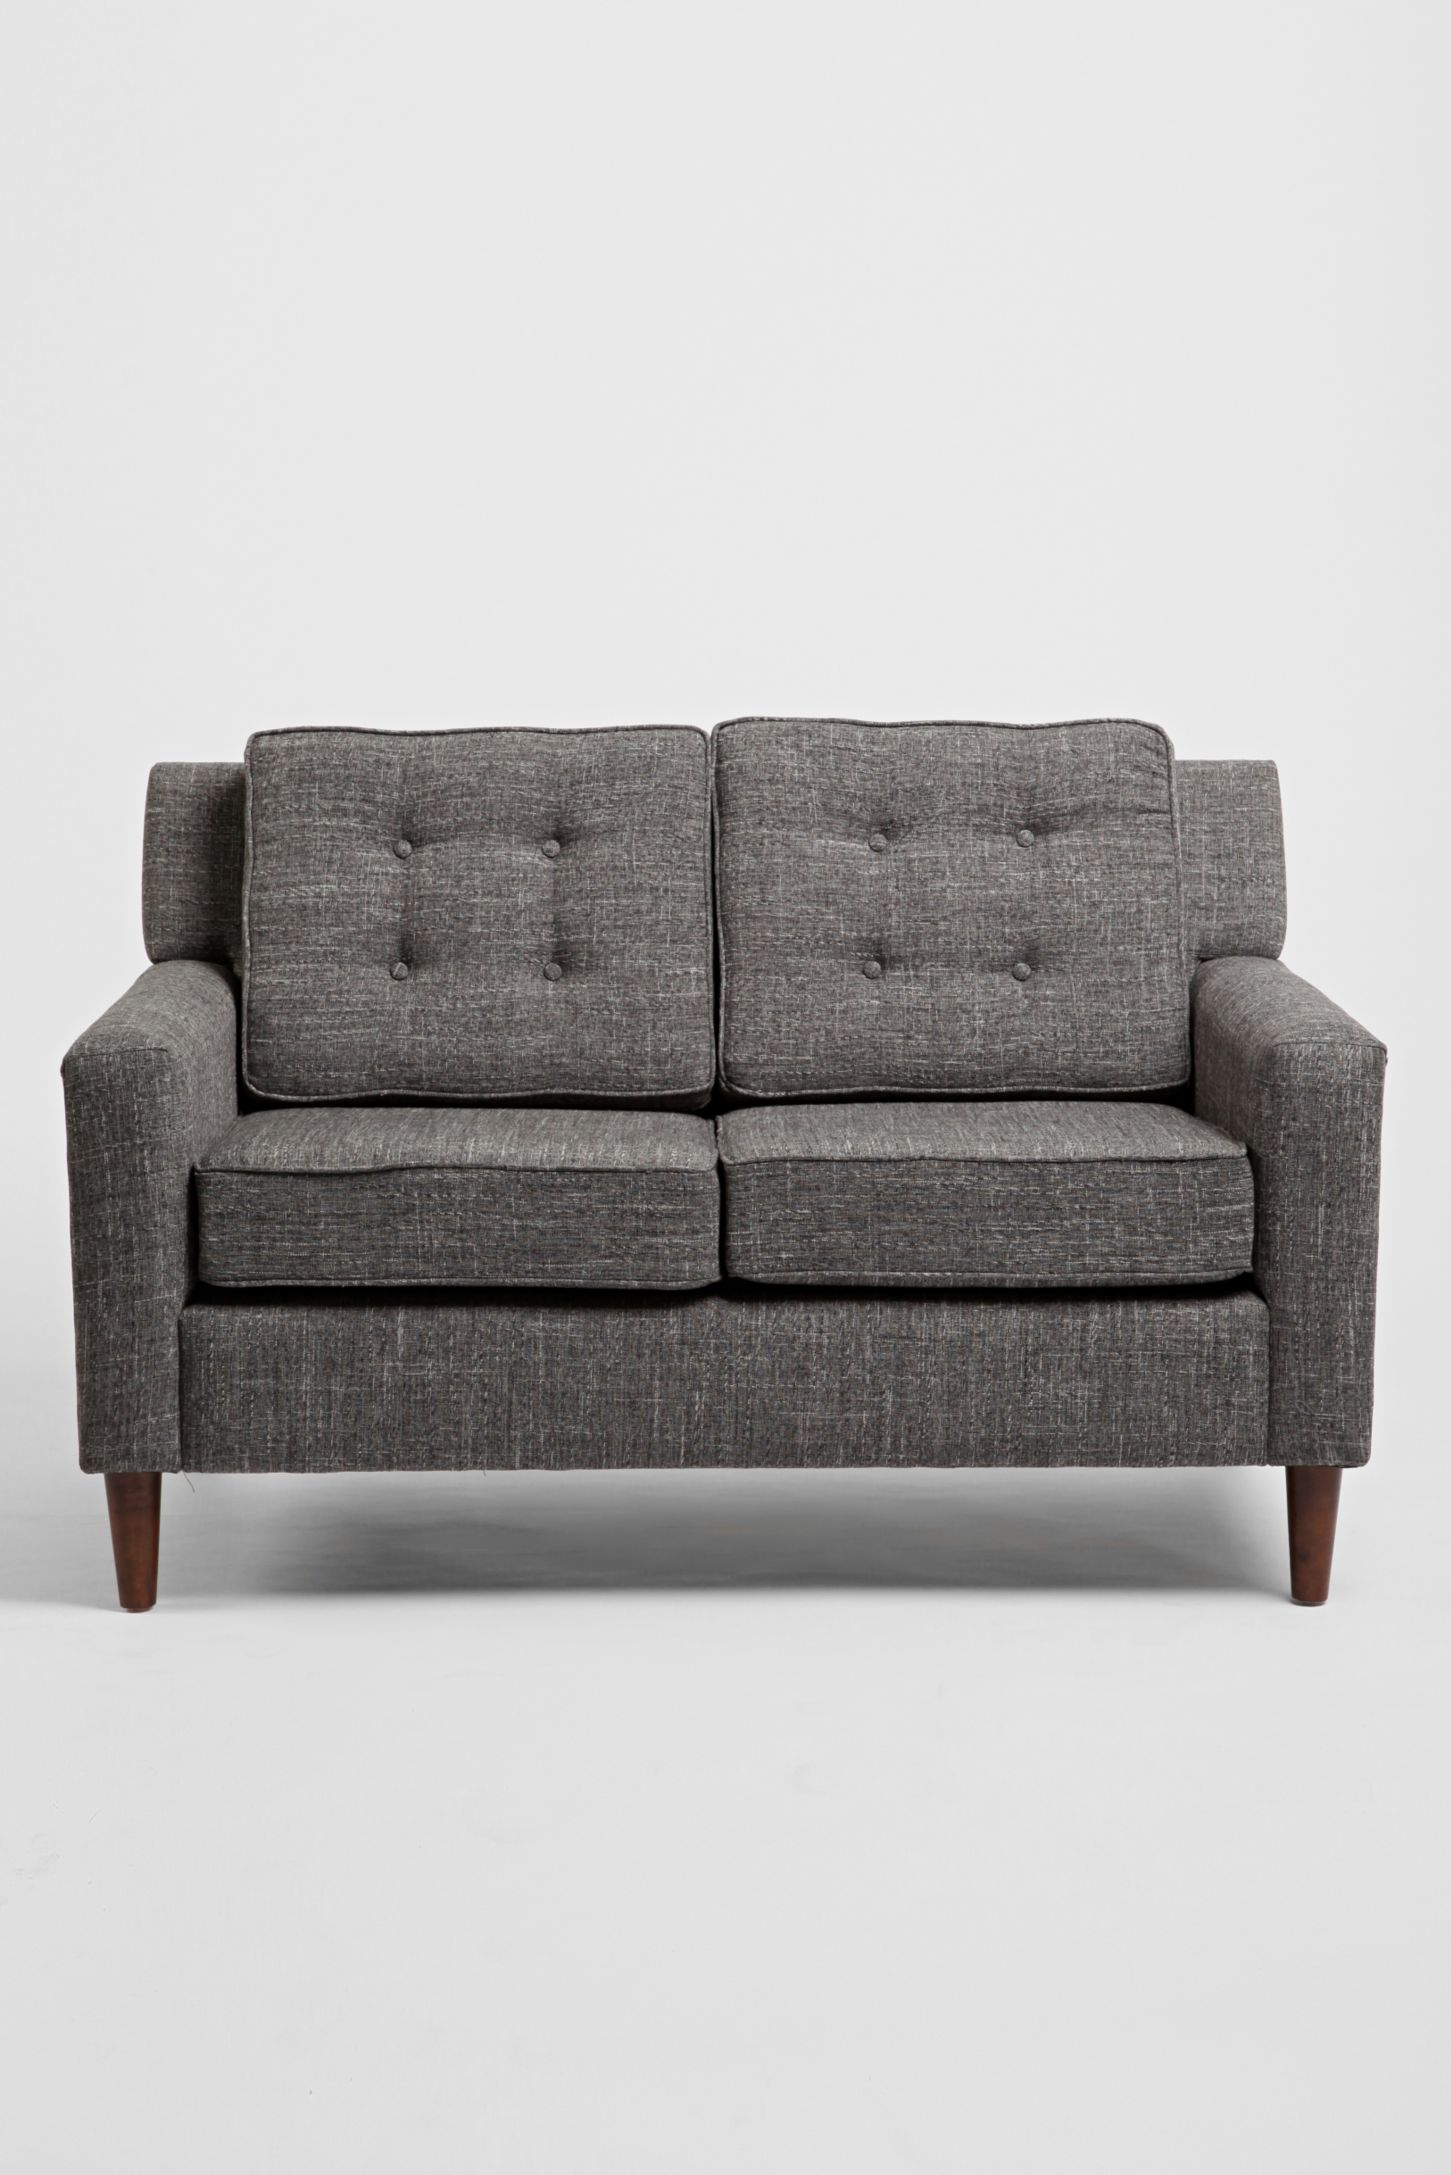 Loveseats Apartment Sofas Couches